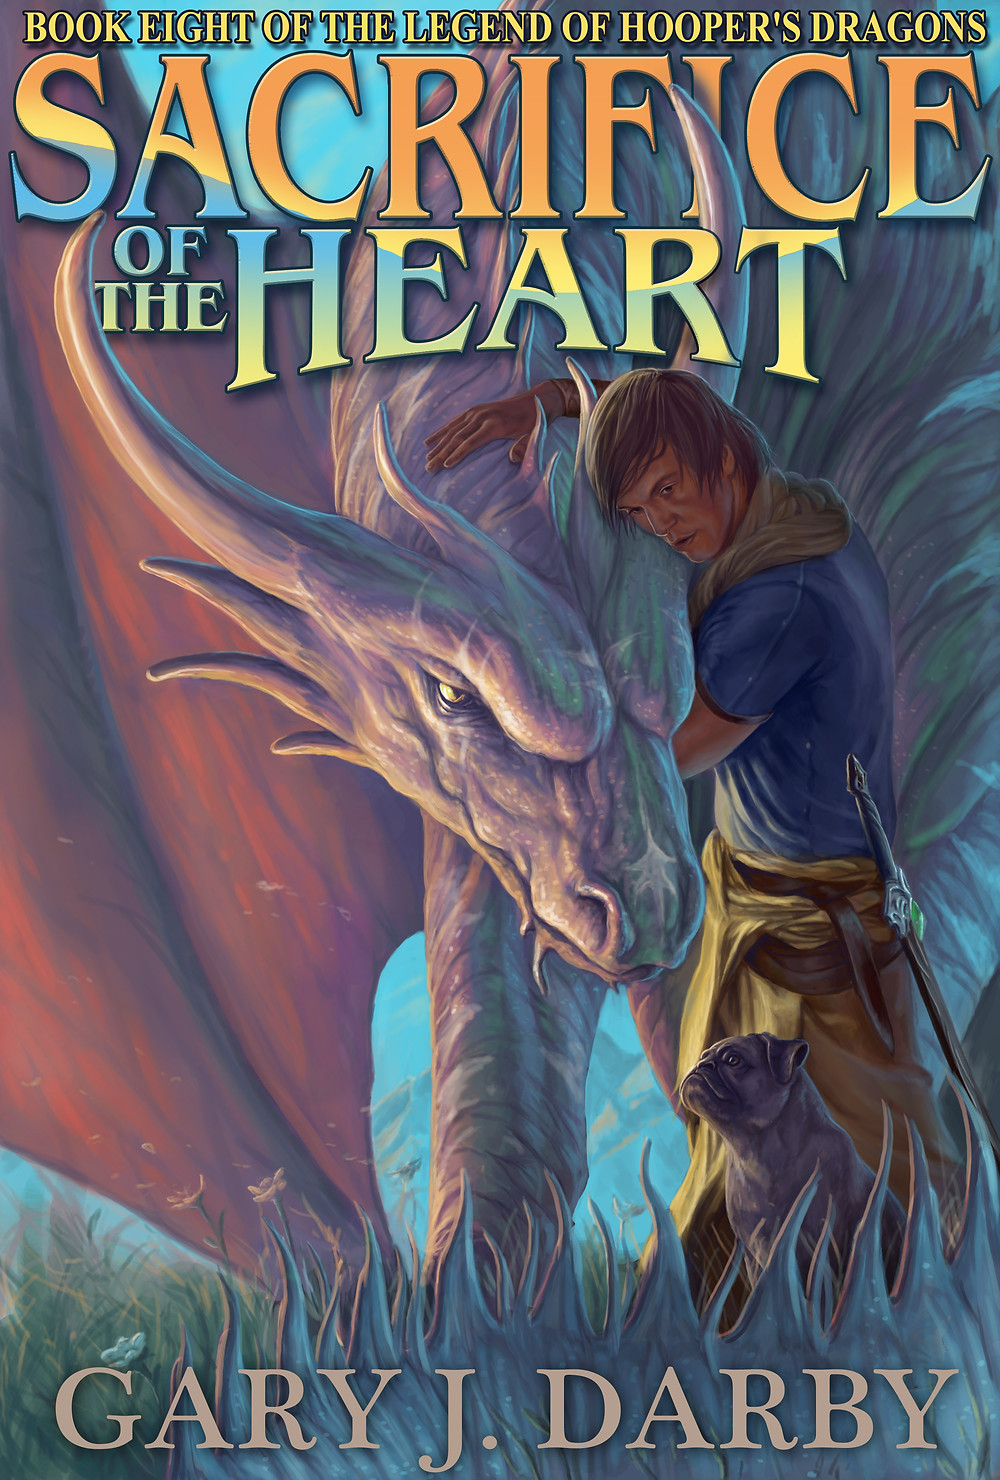 the final book in the series The Legend of Hooper's Dragons